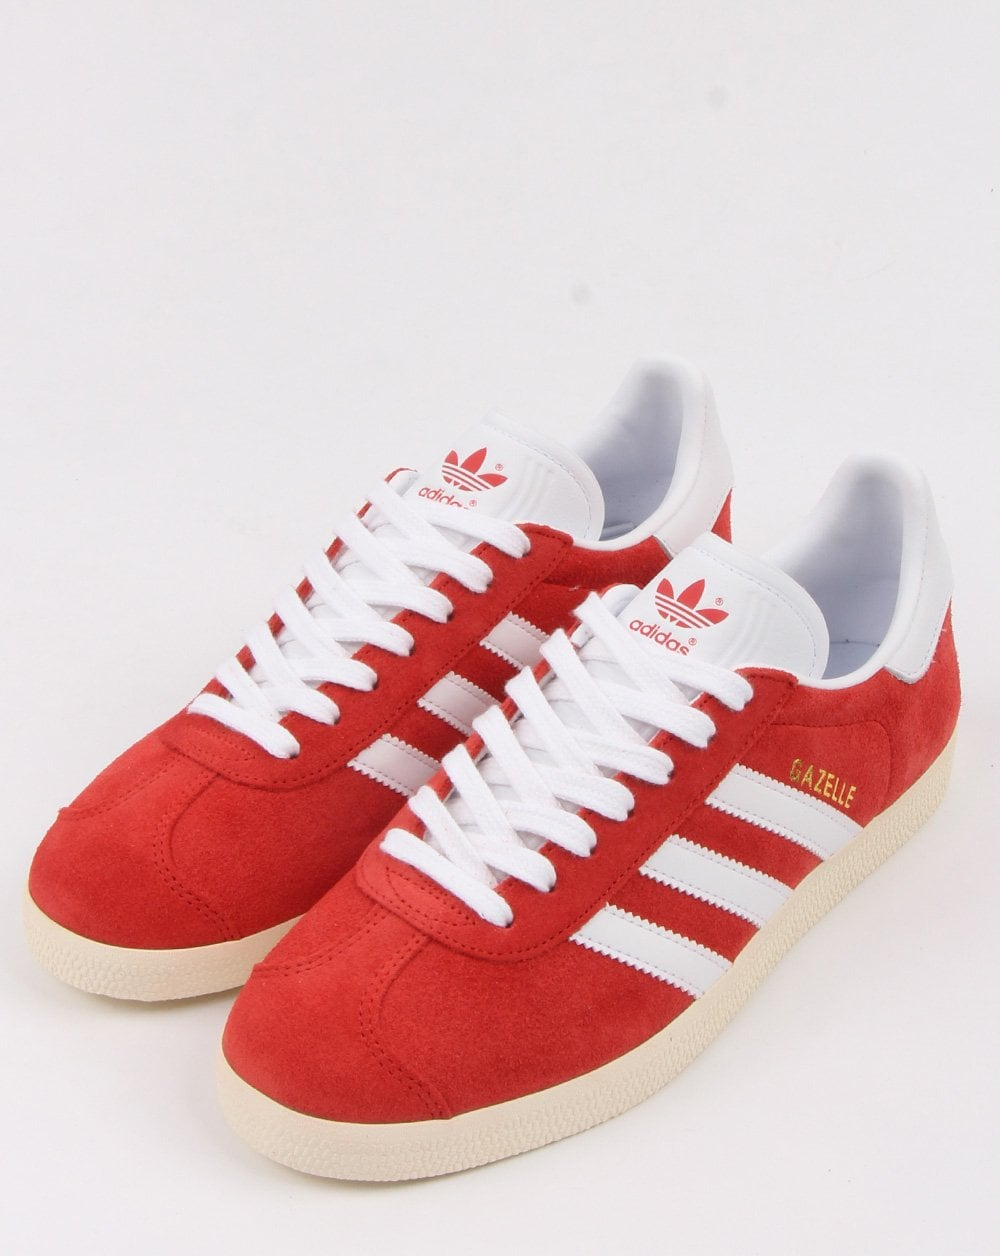 Adidas Gazelle Trainers Tactile Red